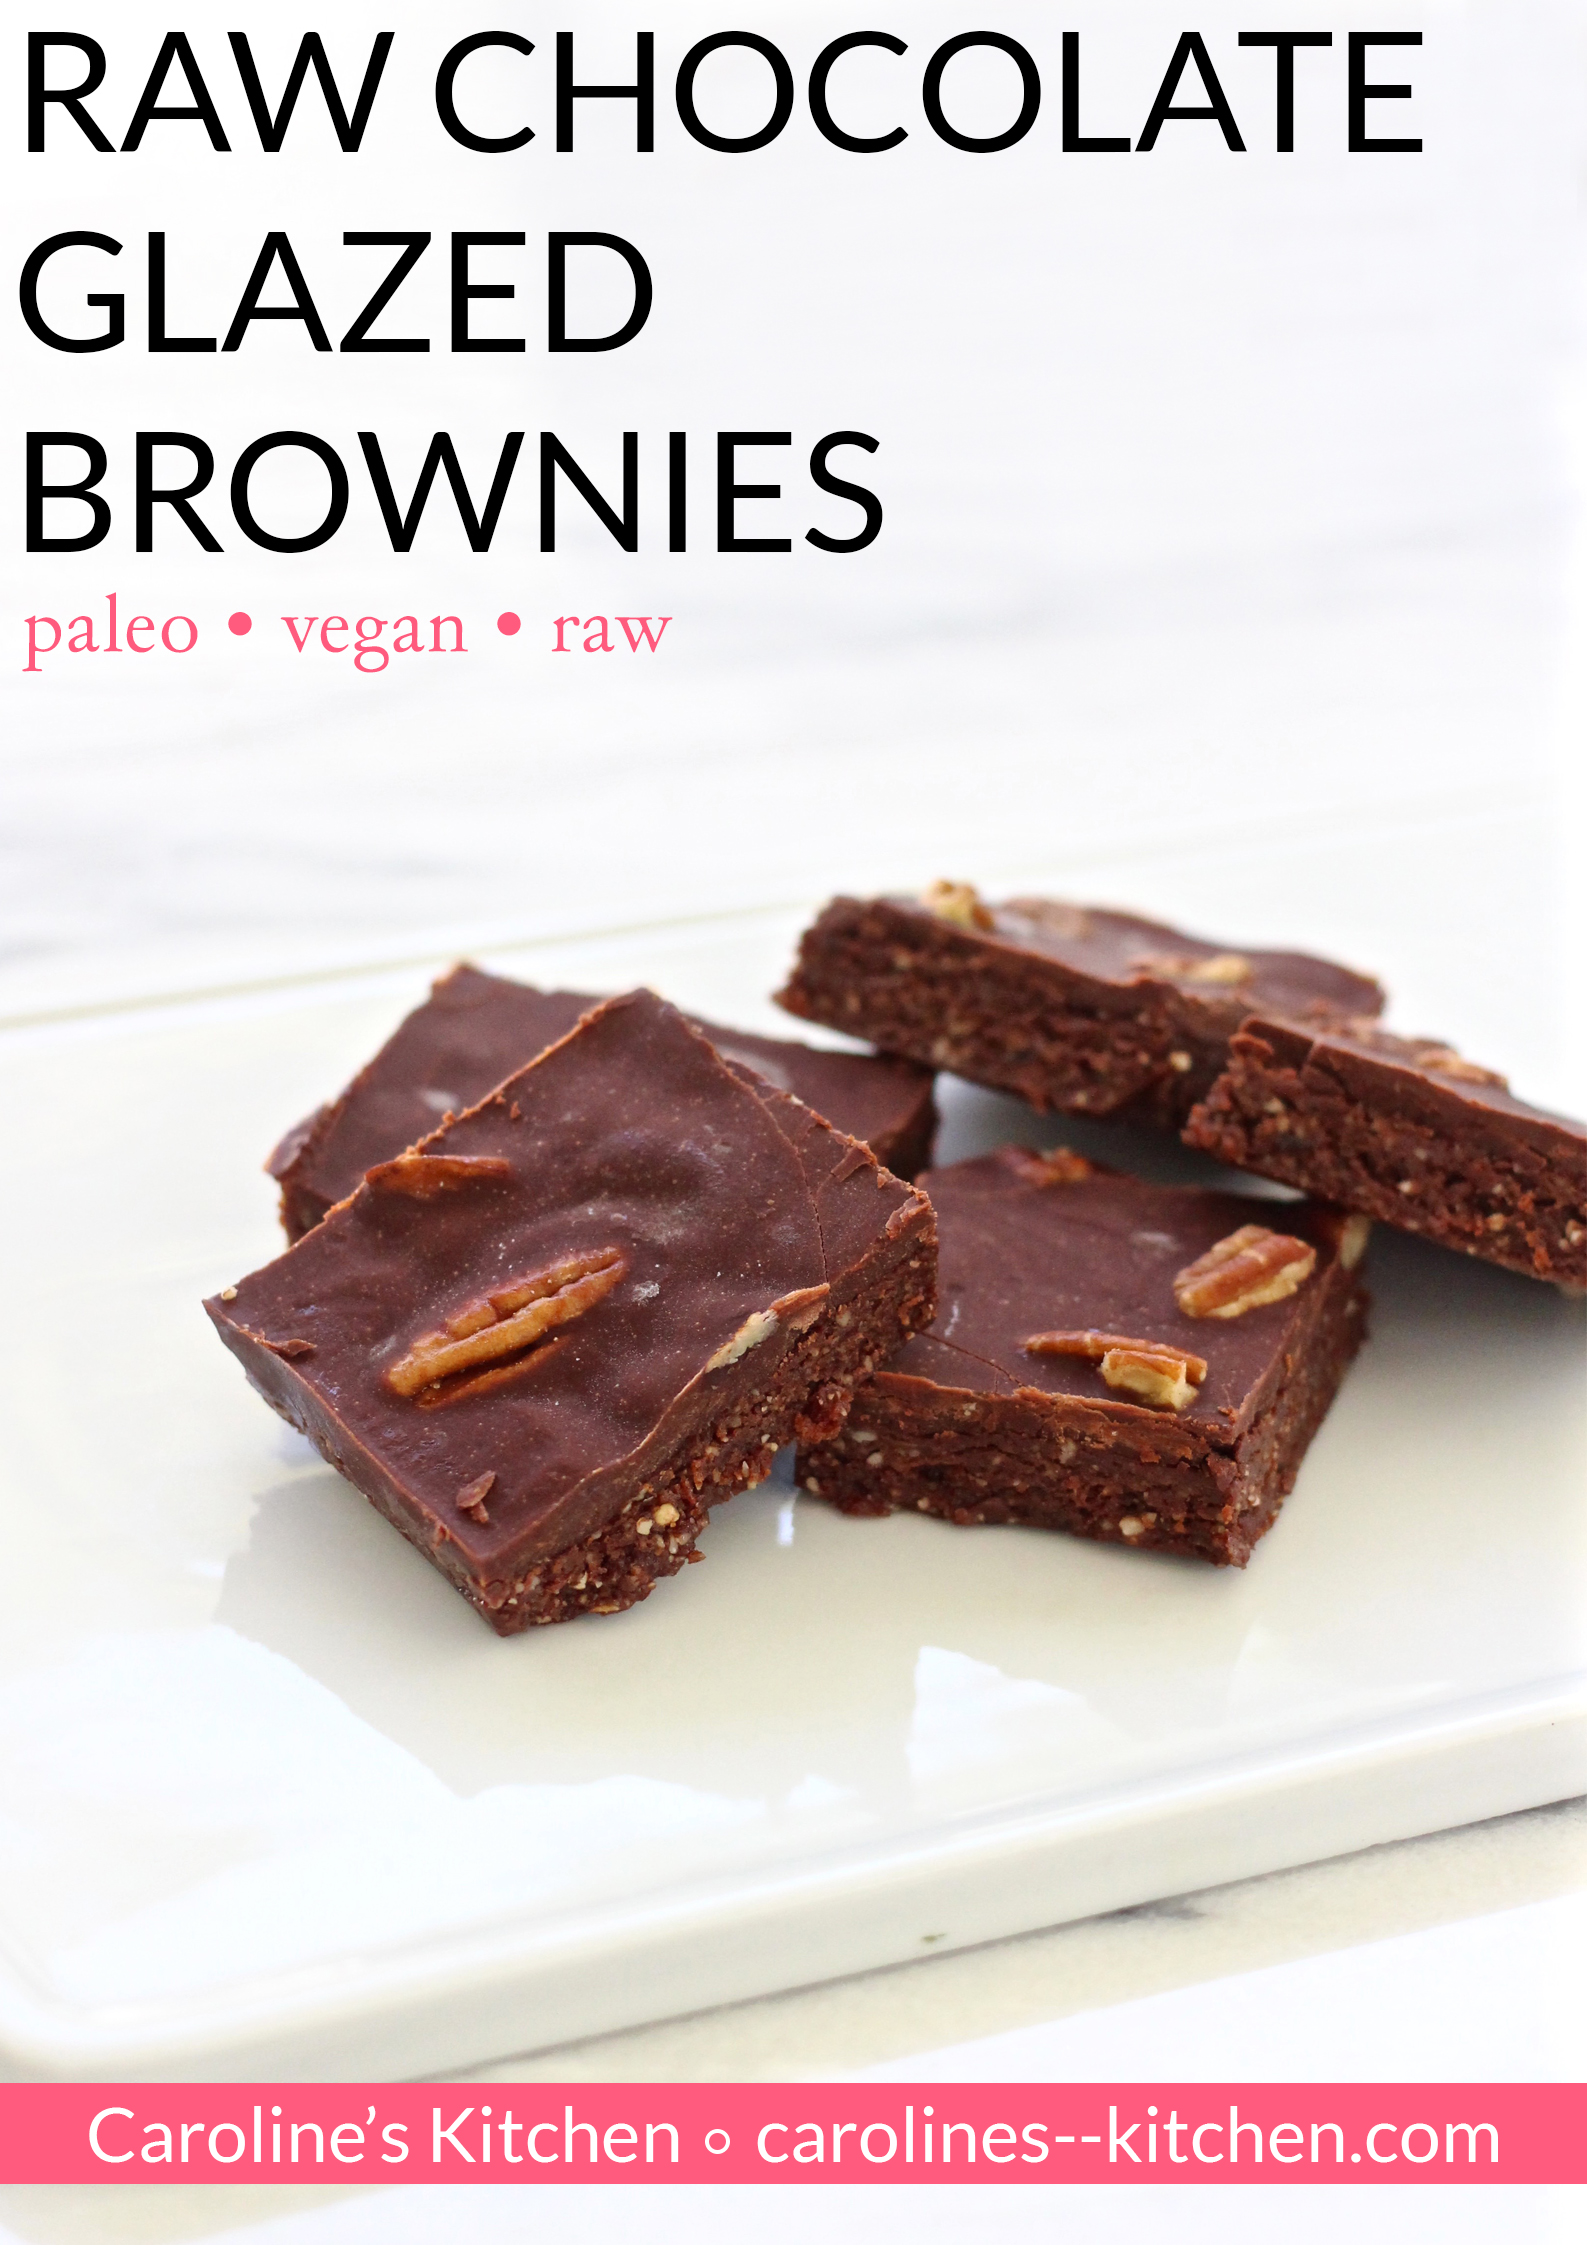 raw chocolate glazed brownies pin